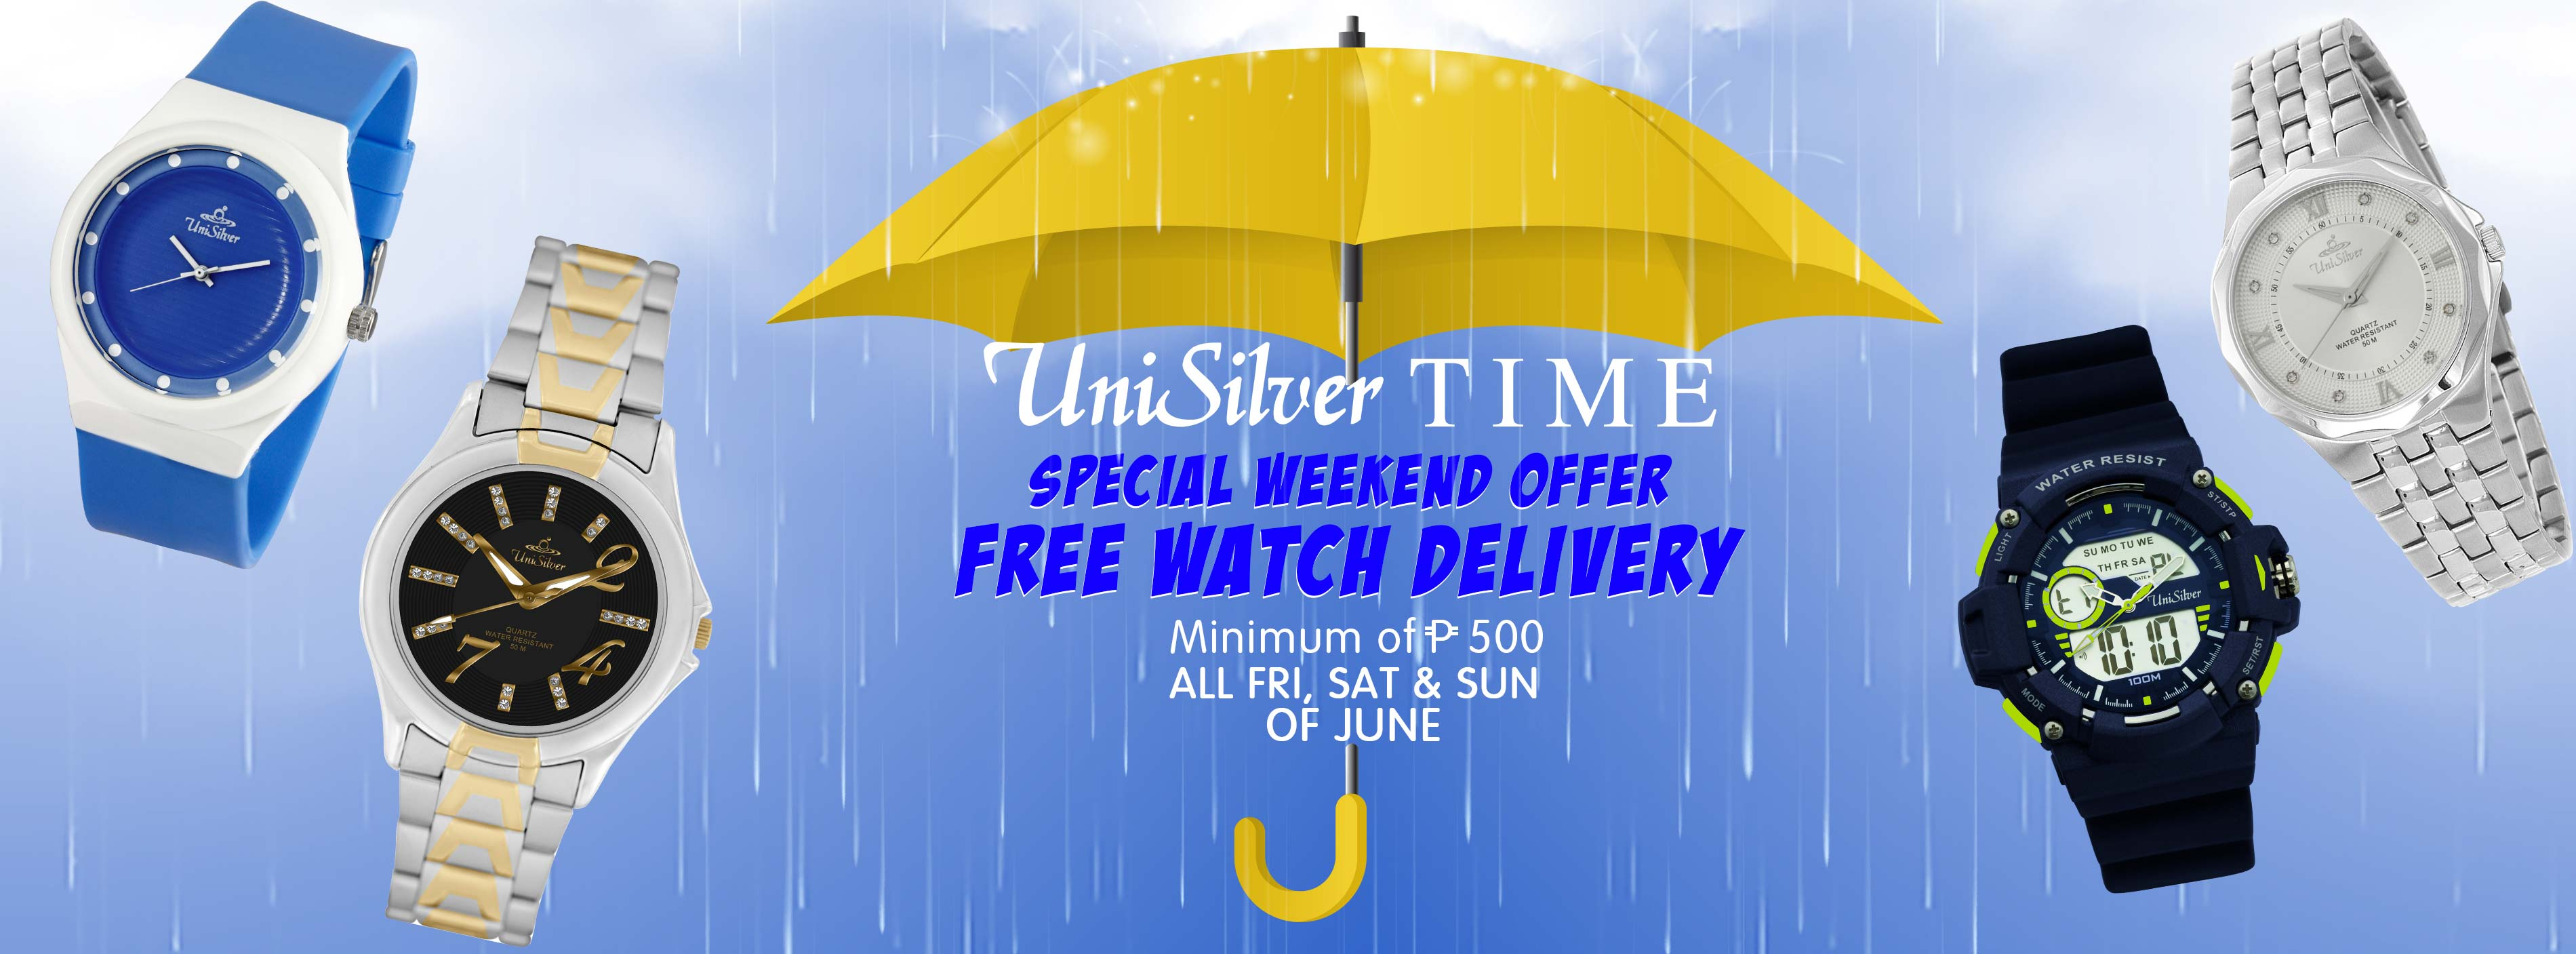 special-weekend-offer-free-delivery_v2